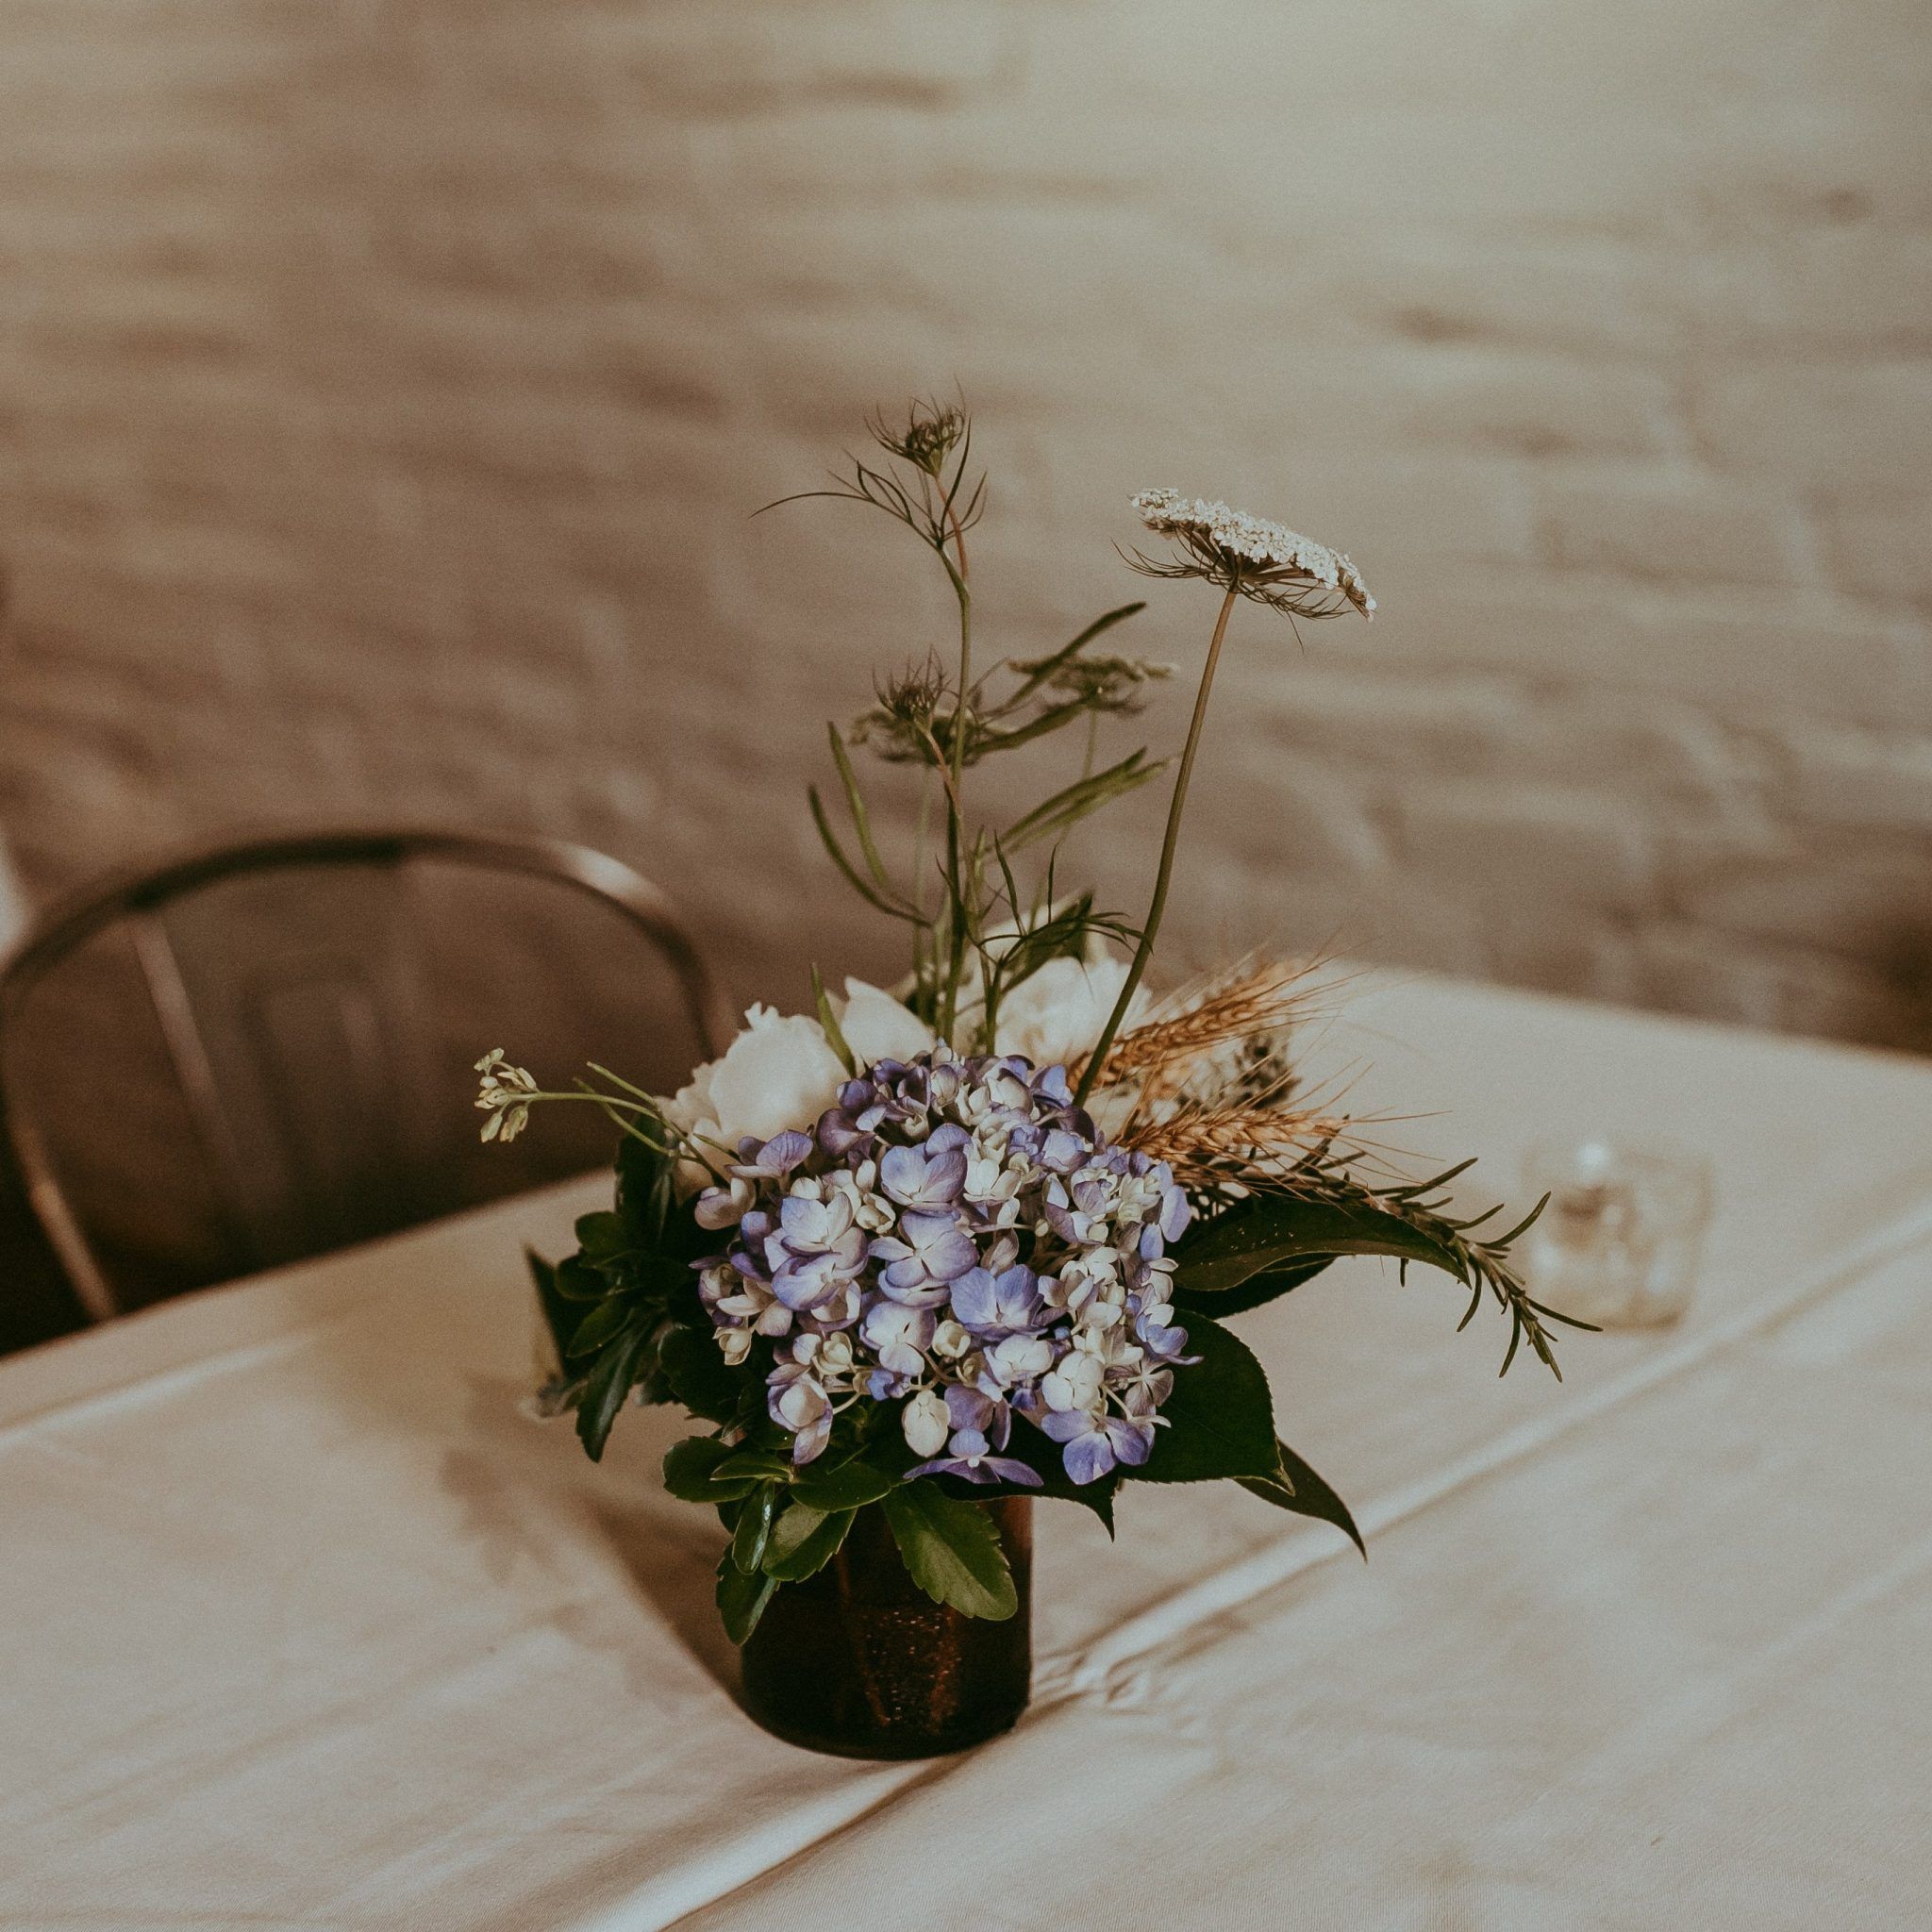 Asymmetrical wedding flower arrangement with blue hydrangea, wheat, and wild flowers in upcycled brown glass vase on white linen